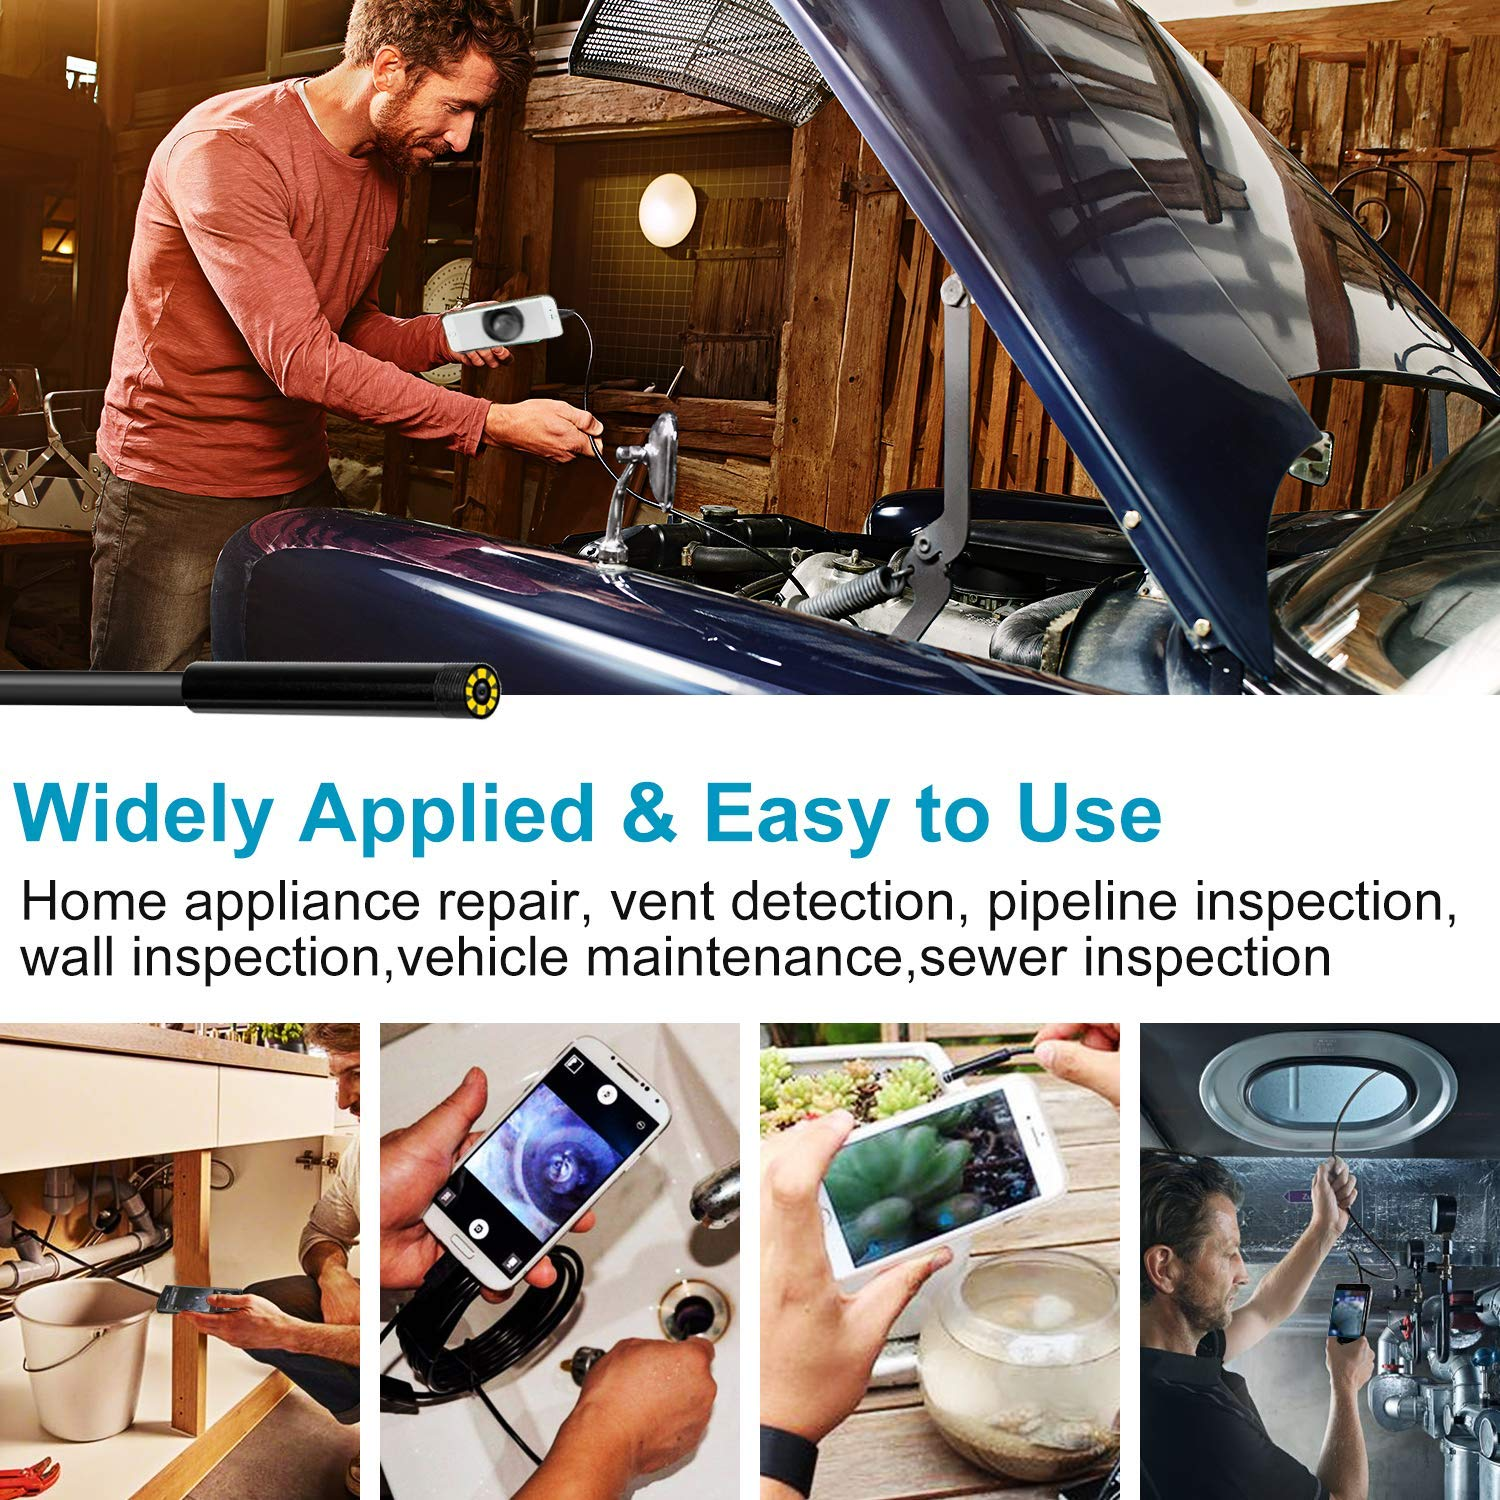 Wireless Endoscope Camera, Baqsoo 2.0 MP 1080P HD WiFi Borescope Inspection Camera IP67 Waterproof Inspection Snake Camera for Android and iOS Smartphone, iPhone, Samsung, Tablet-Black(16.4FT)